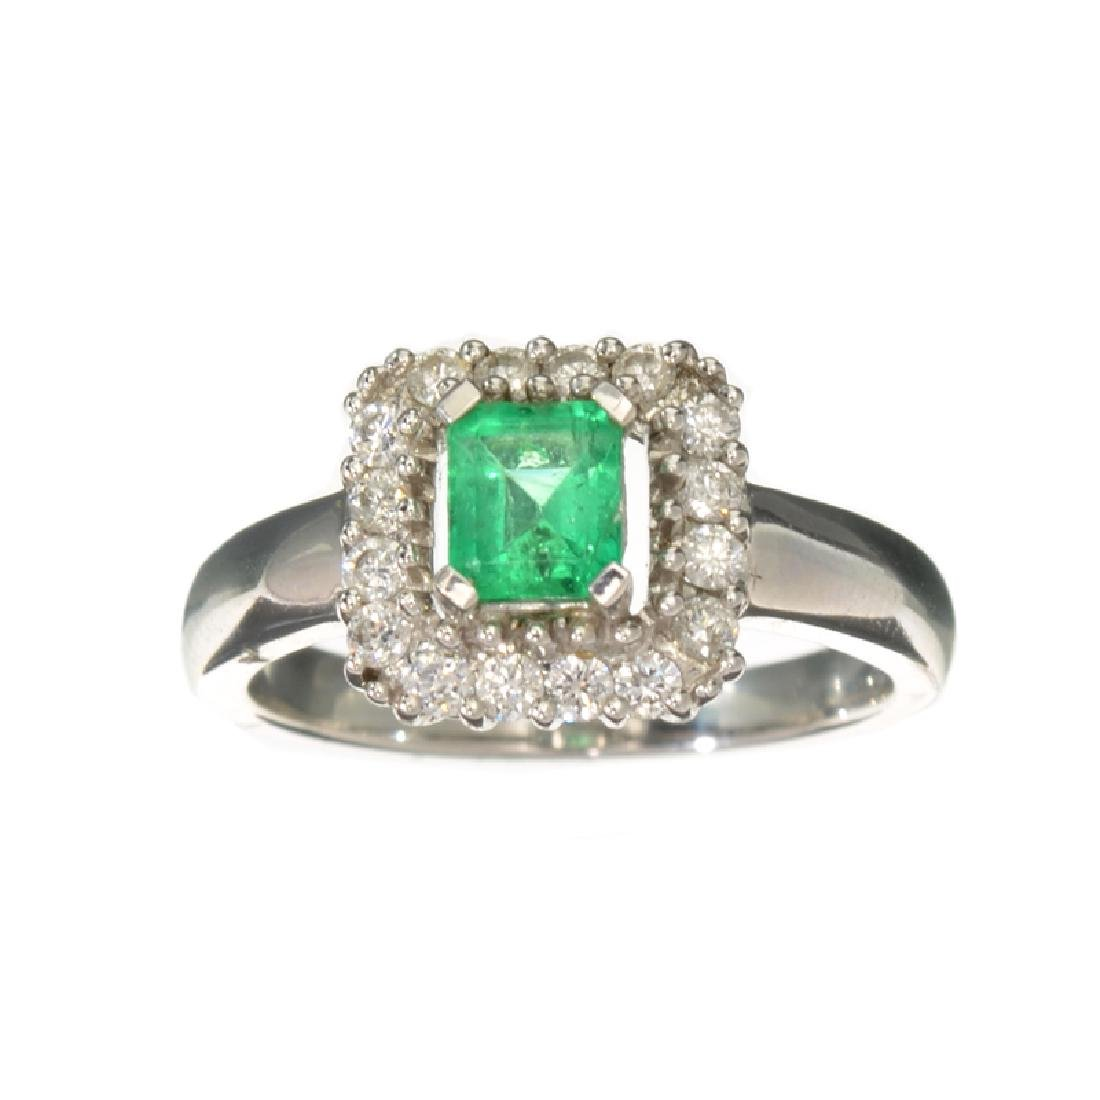 APP: 2.8k Fine Jewelry 18KT White Gold, 0.63CT